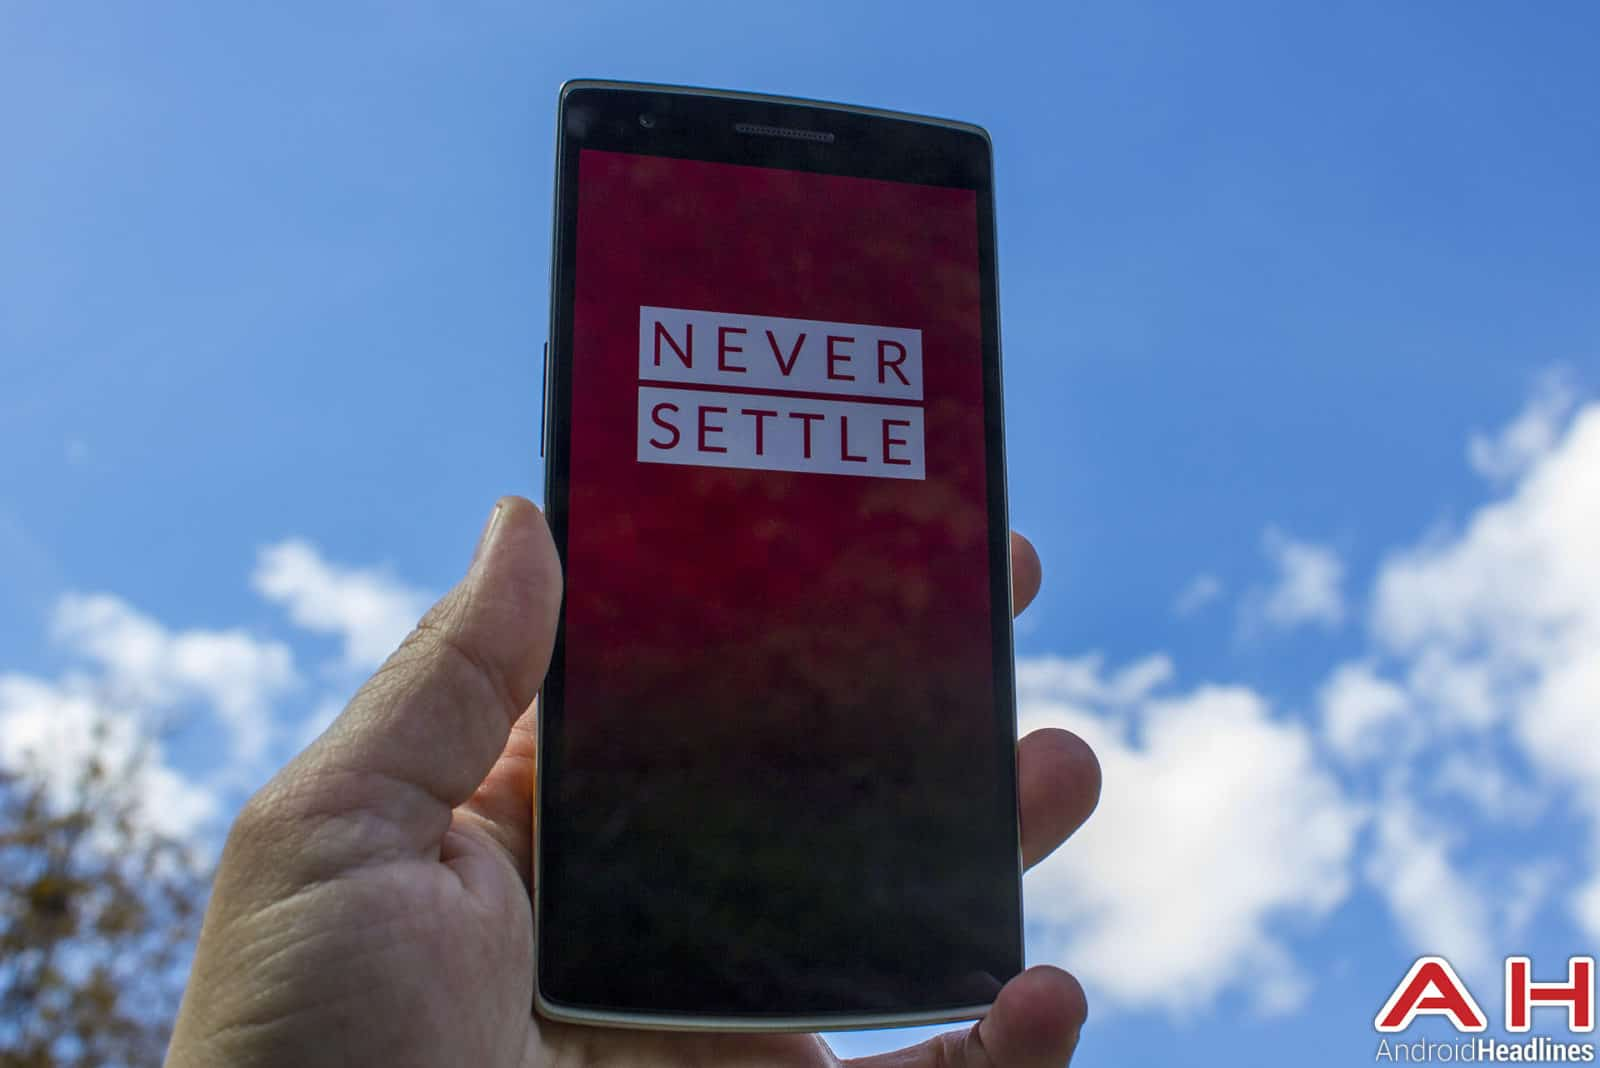 OnePlus-One-Never-Settle-02